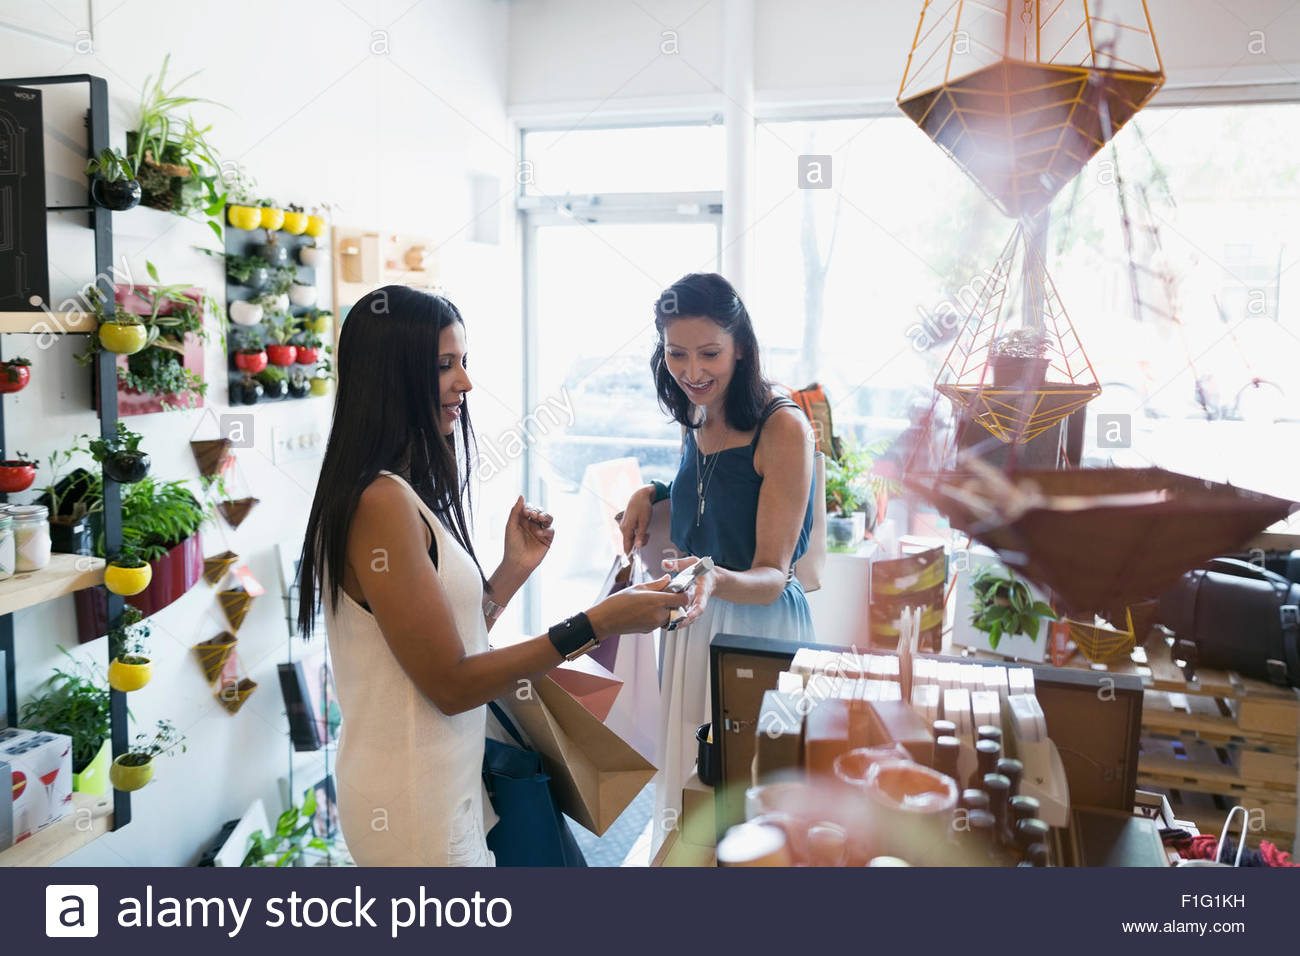 Women shopping in housewares shop Banque D'Images